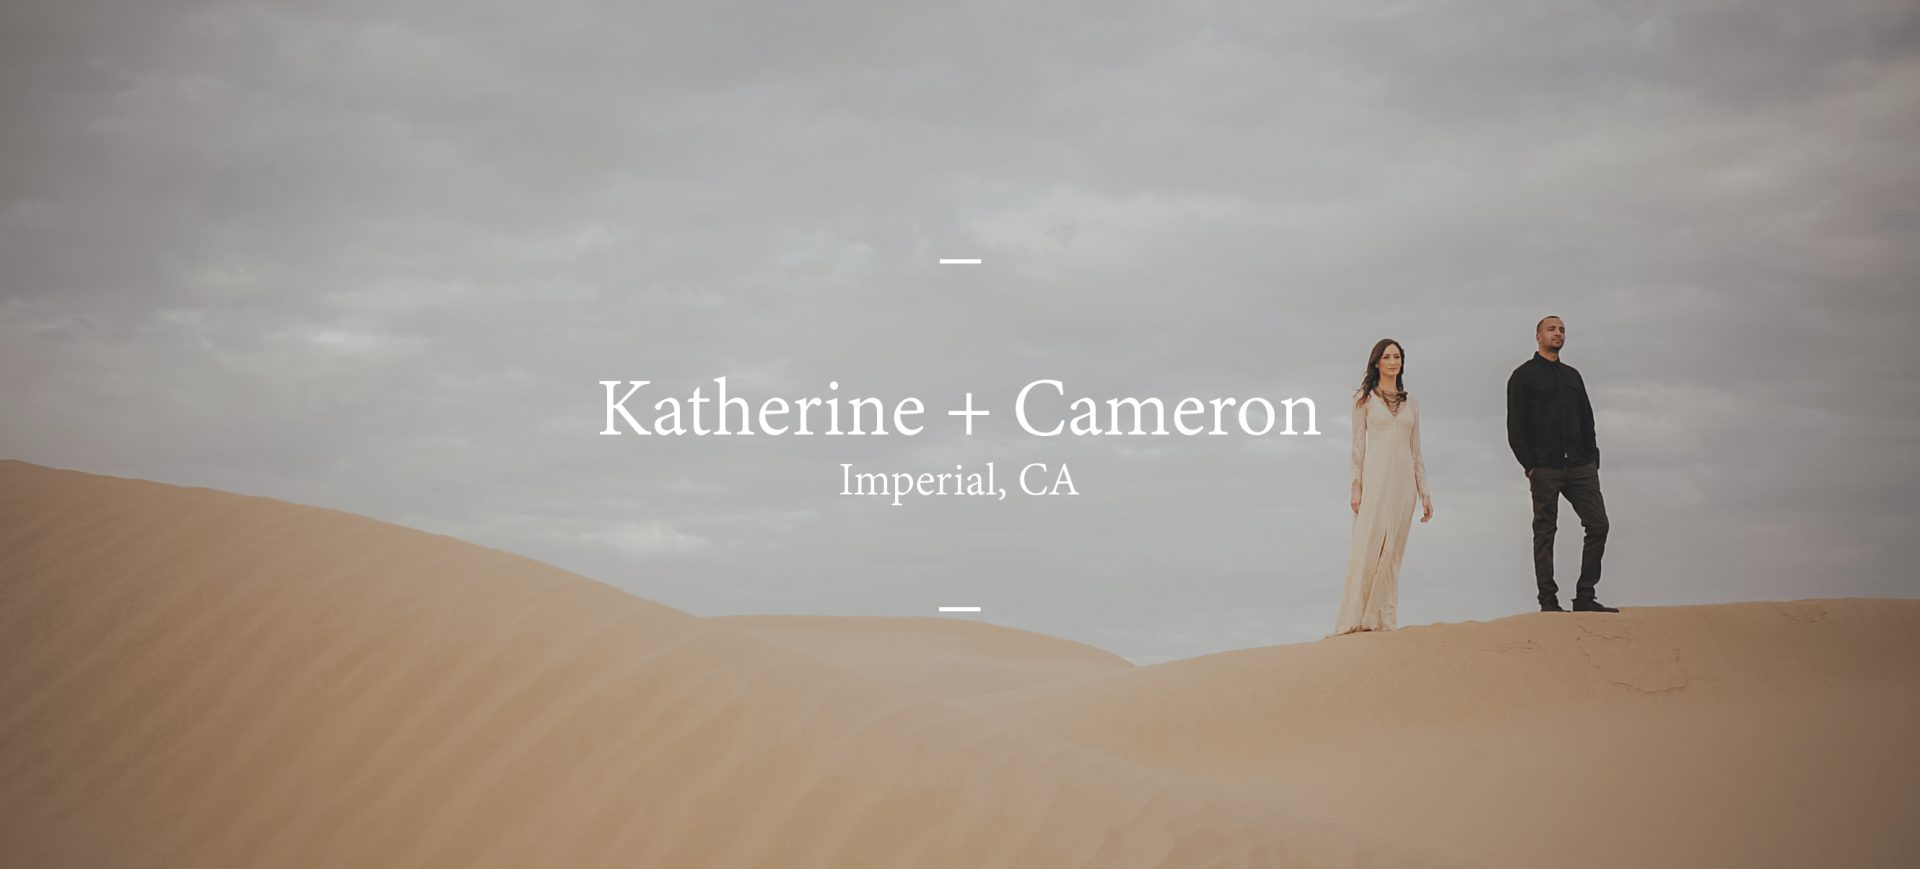 Katherine + Cameron | Imperial, California | Imperial Dunes